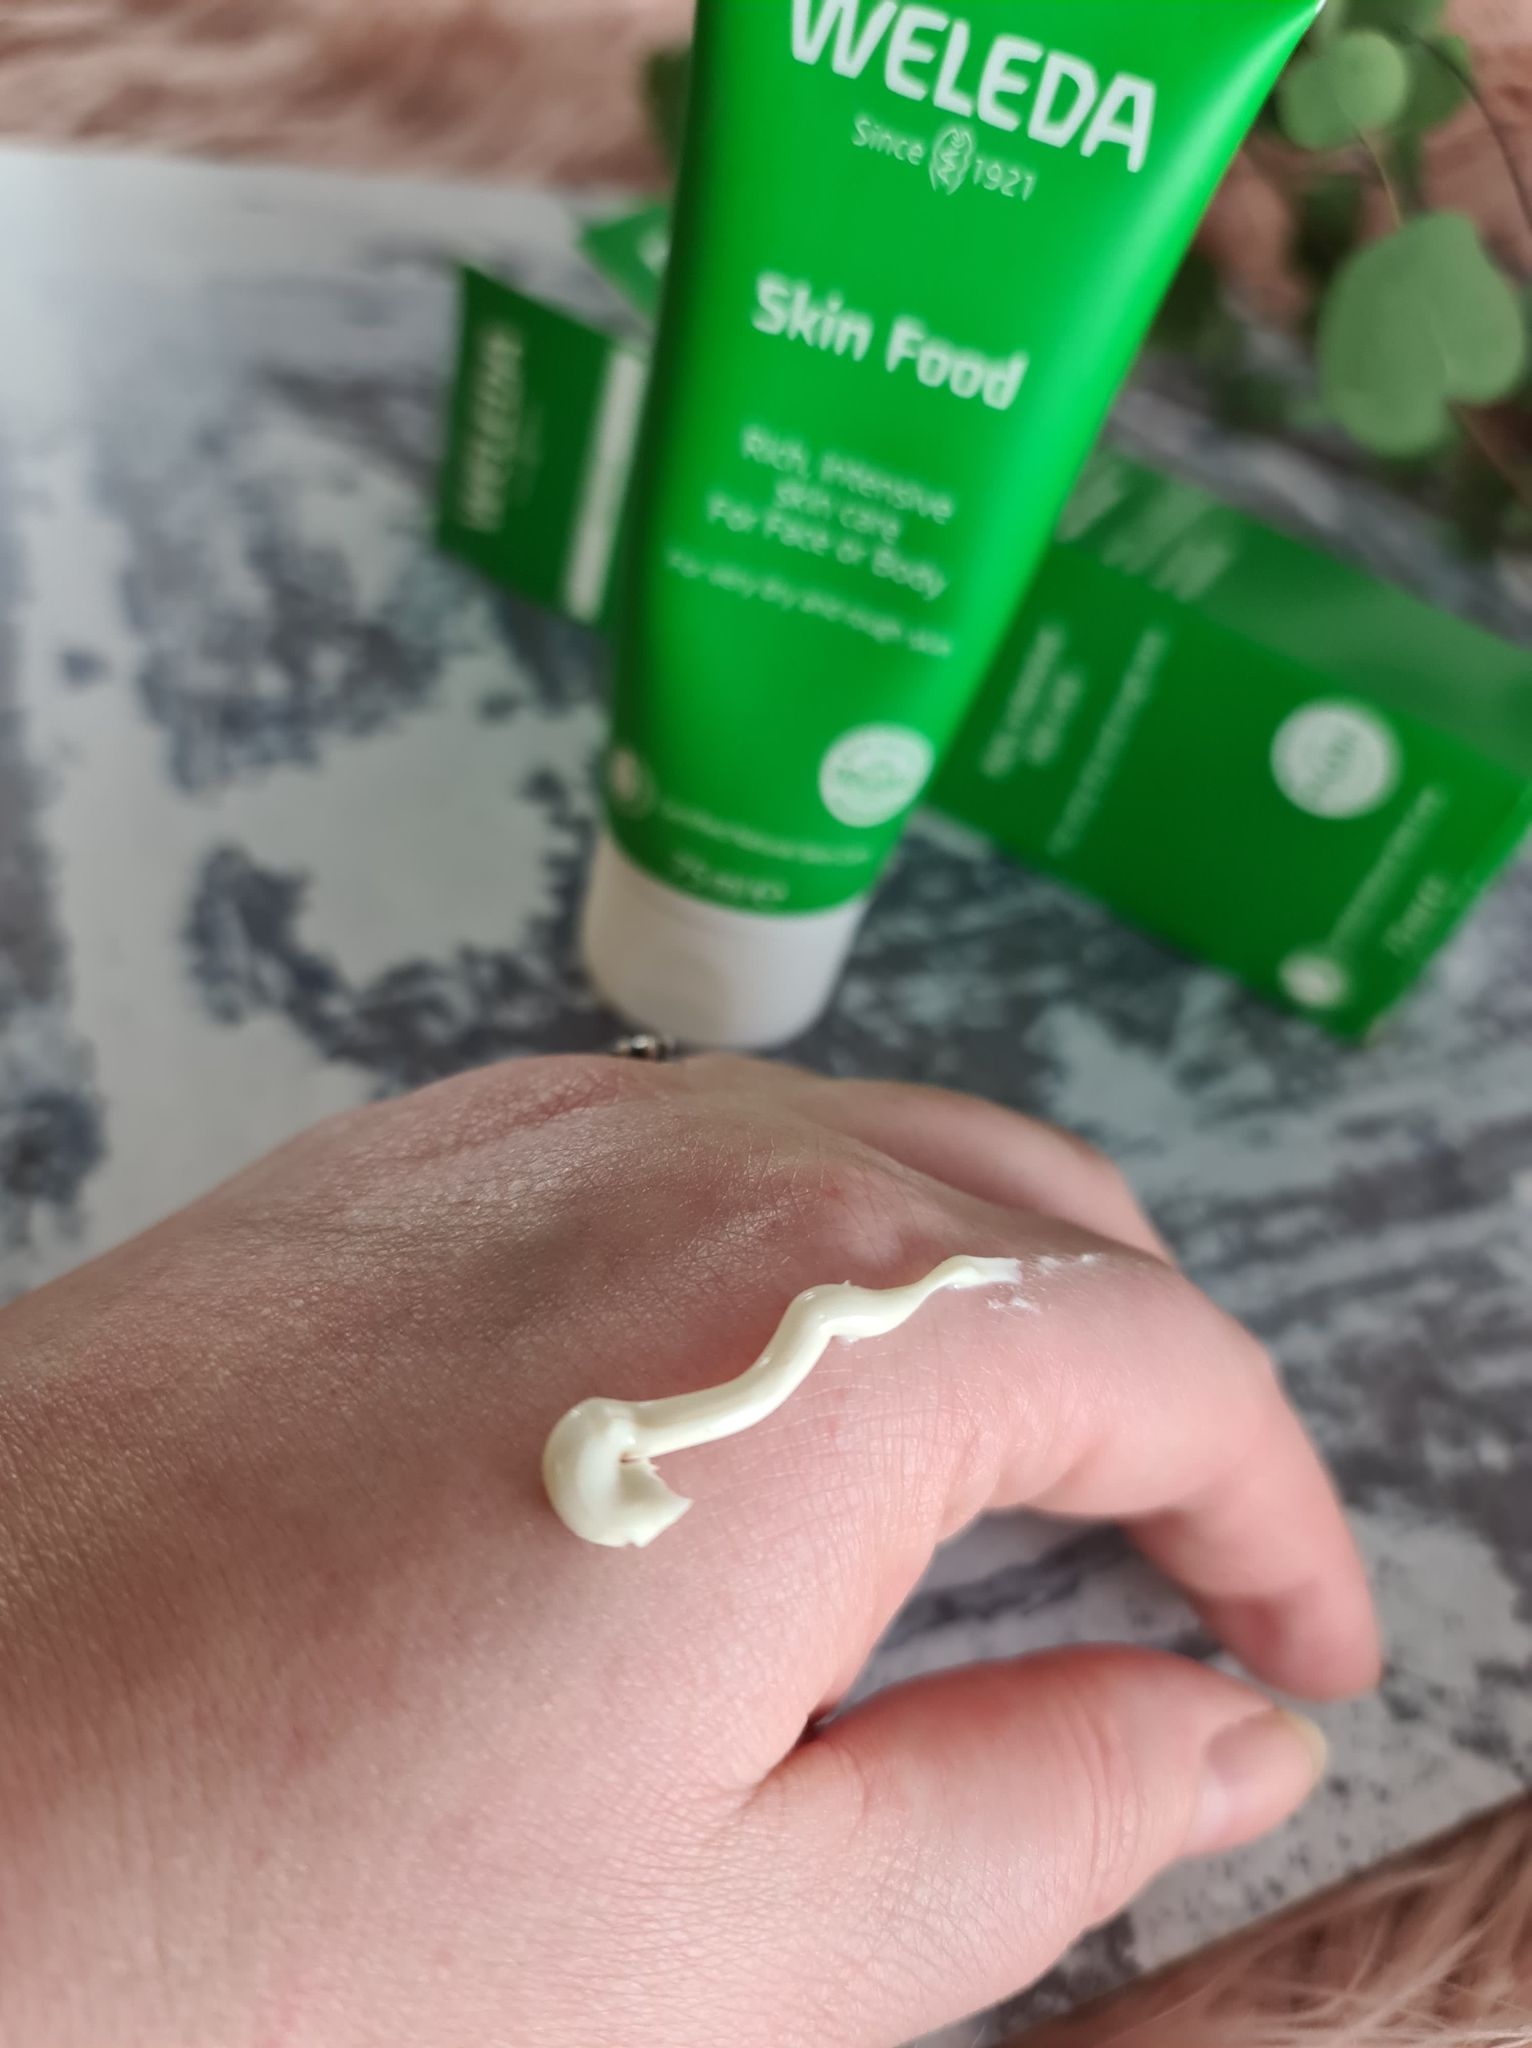 Weleda skin food cream photo swatch